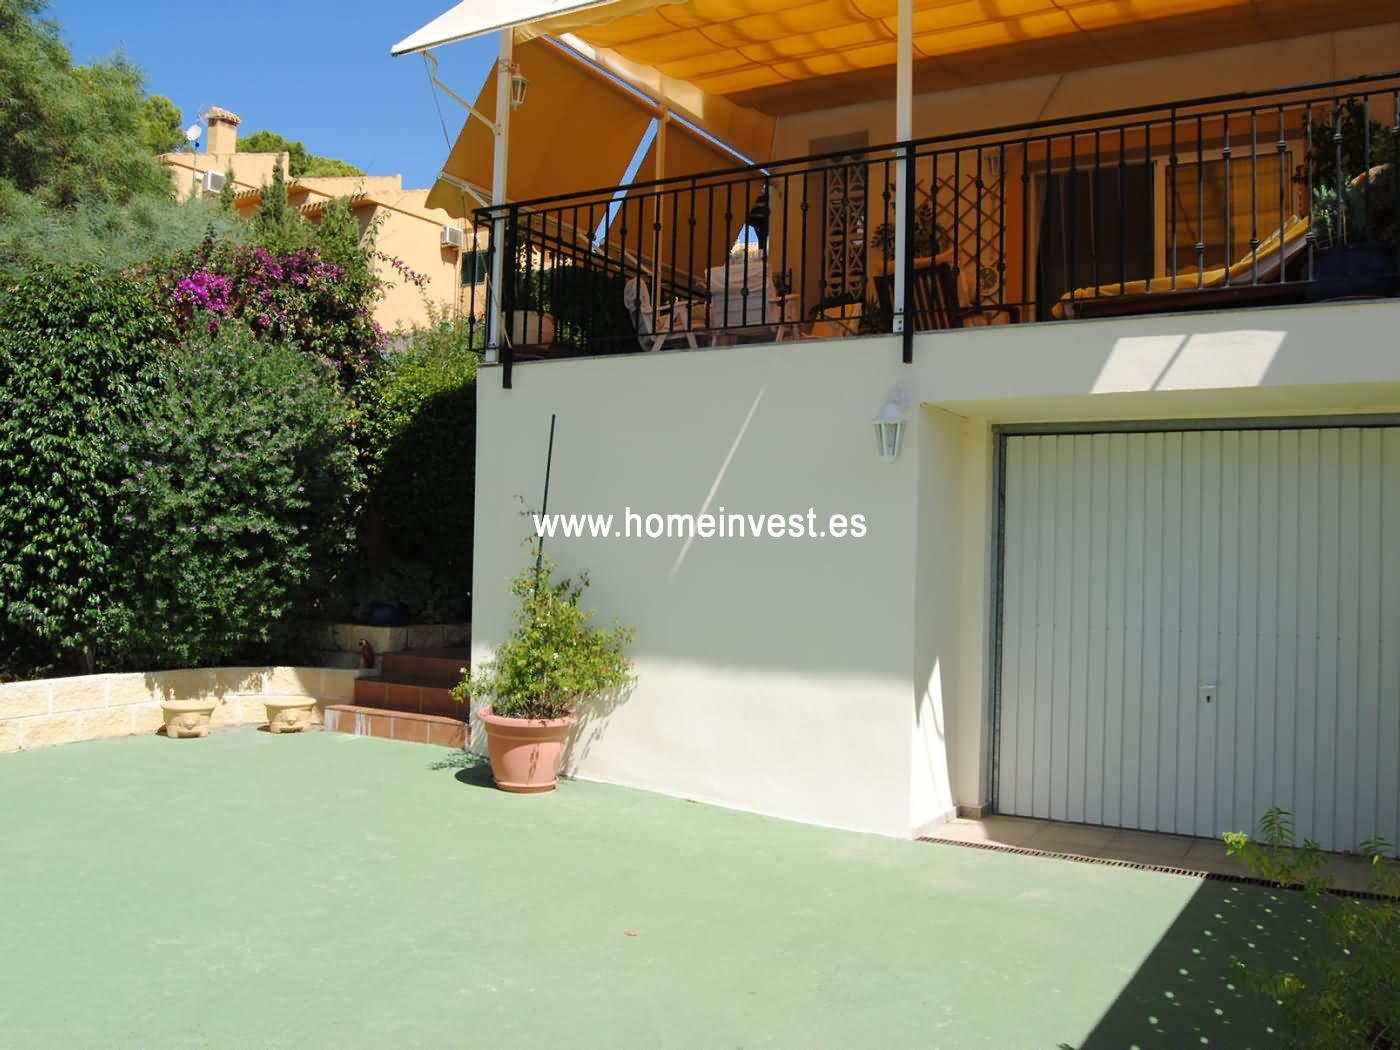 TOWN HOUSE IN LA NUCIA